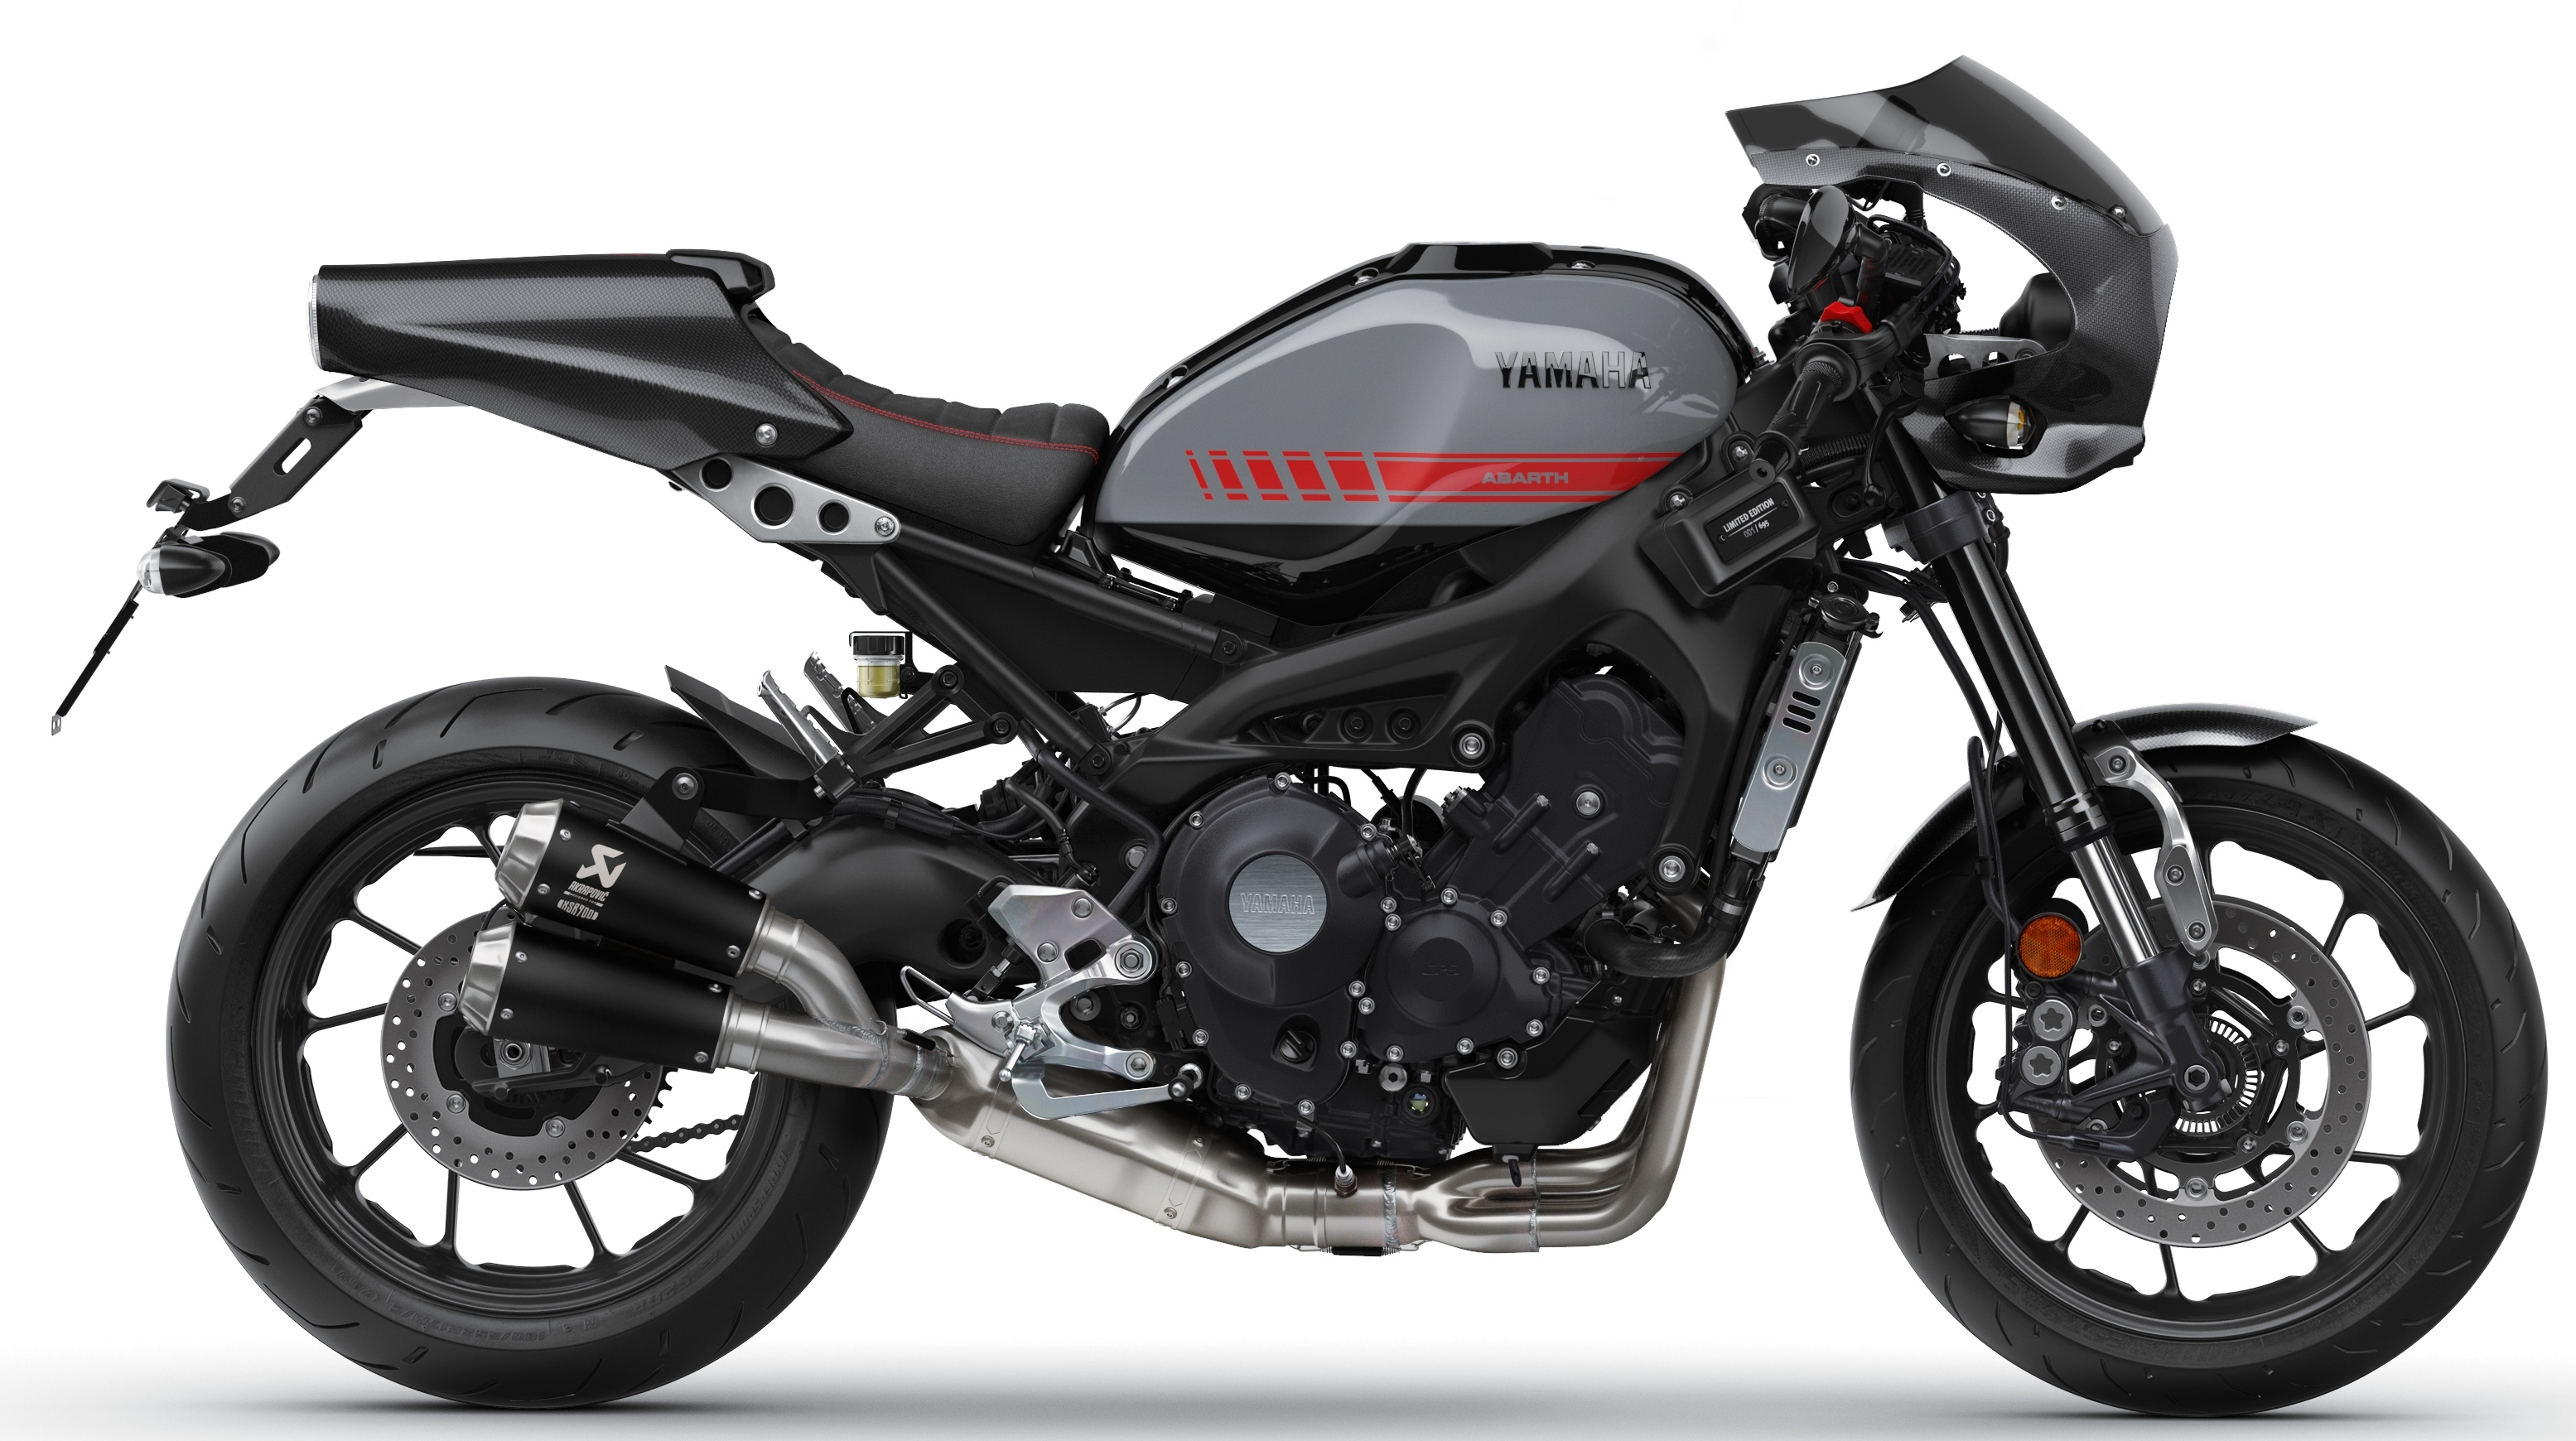 2017 Yamaha Xsr900 Abarth Released Only 695 Units Image